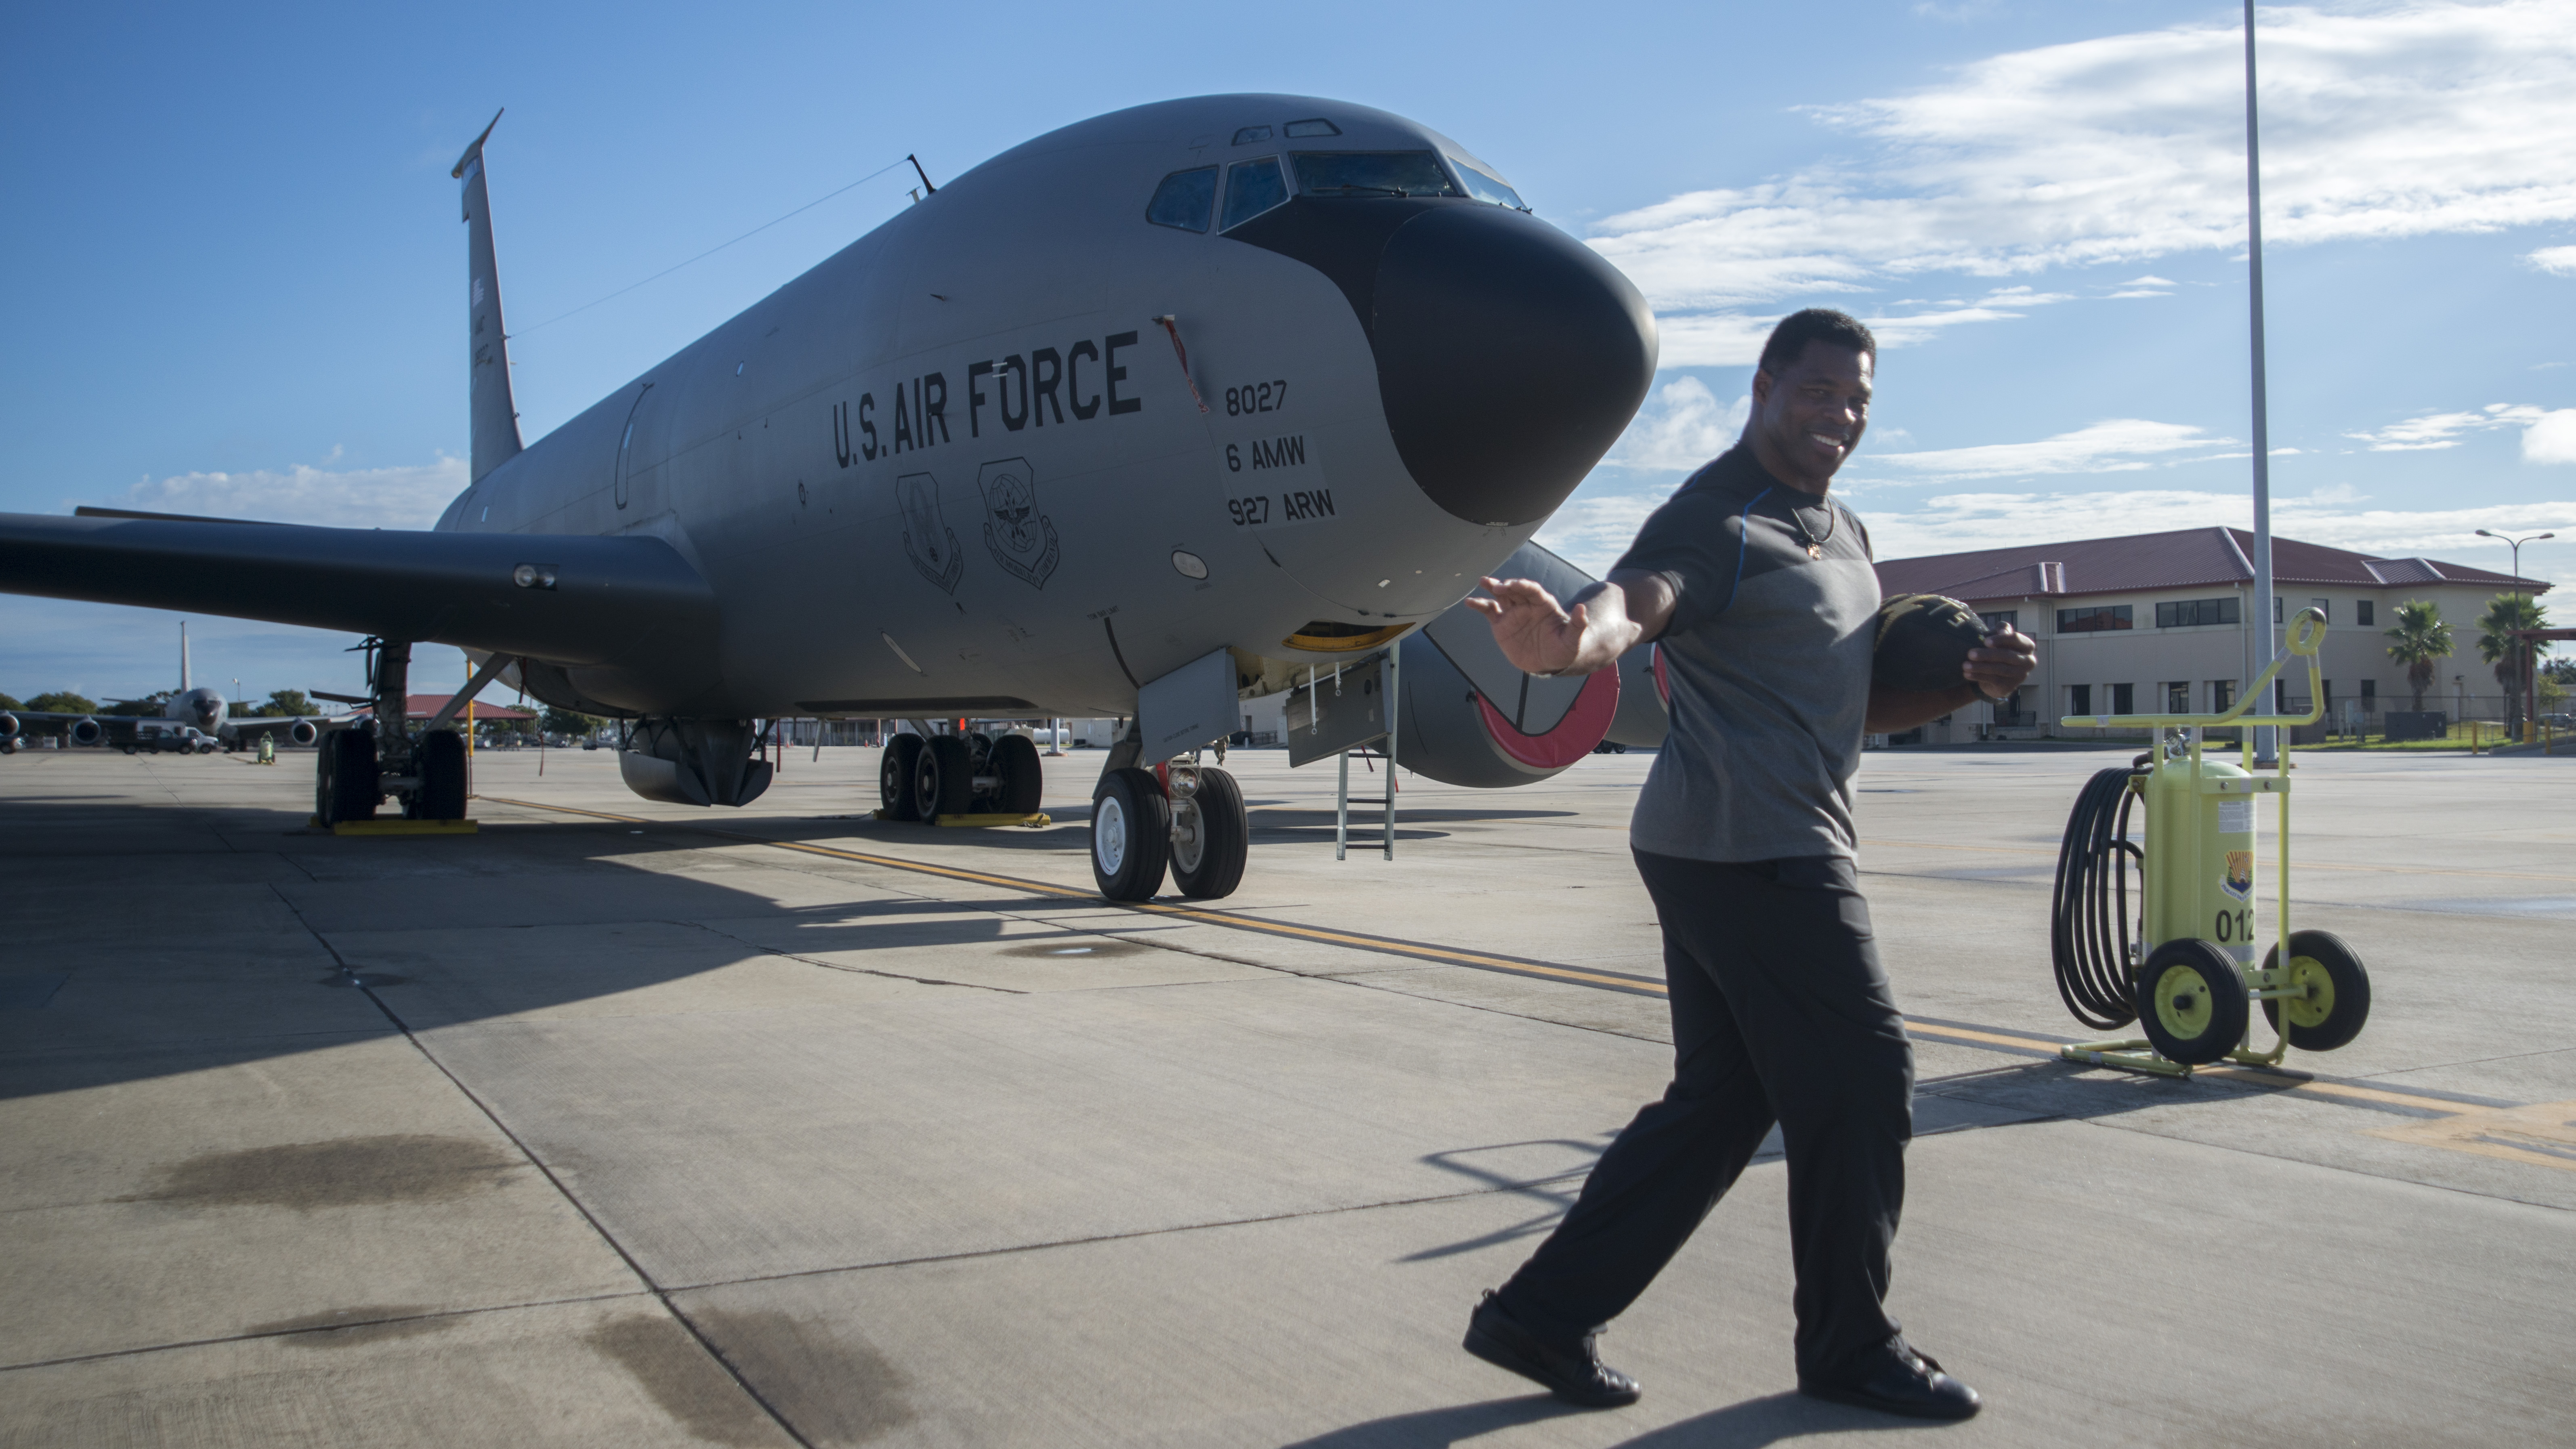 Former NFL running back Herschel Walker pauses for a photo in front of a KC-135 Stratotanker at MacDill Air Force Base, Fla., Nov. 15, 2018. Walker visited MacDill for two days, touring facilities and speaking to Airmen about resiliency and mental health. (U.S. Air Force photo by Airman 1st Class Ryan C. Grossklag)